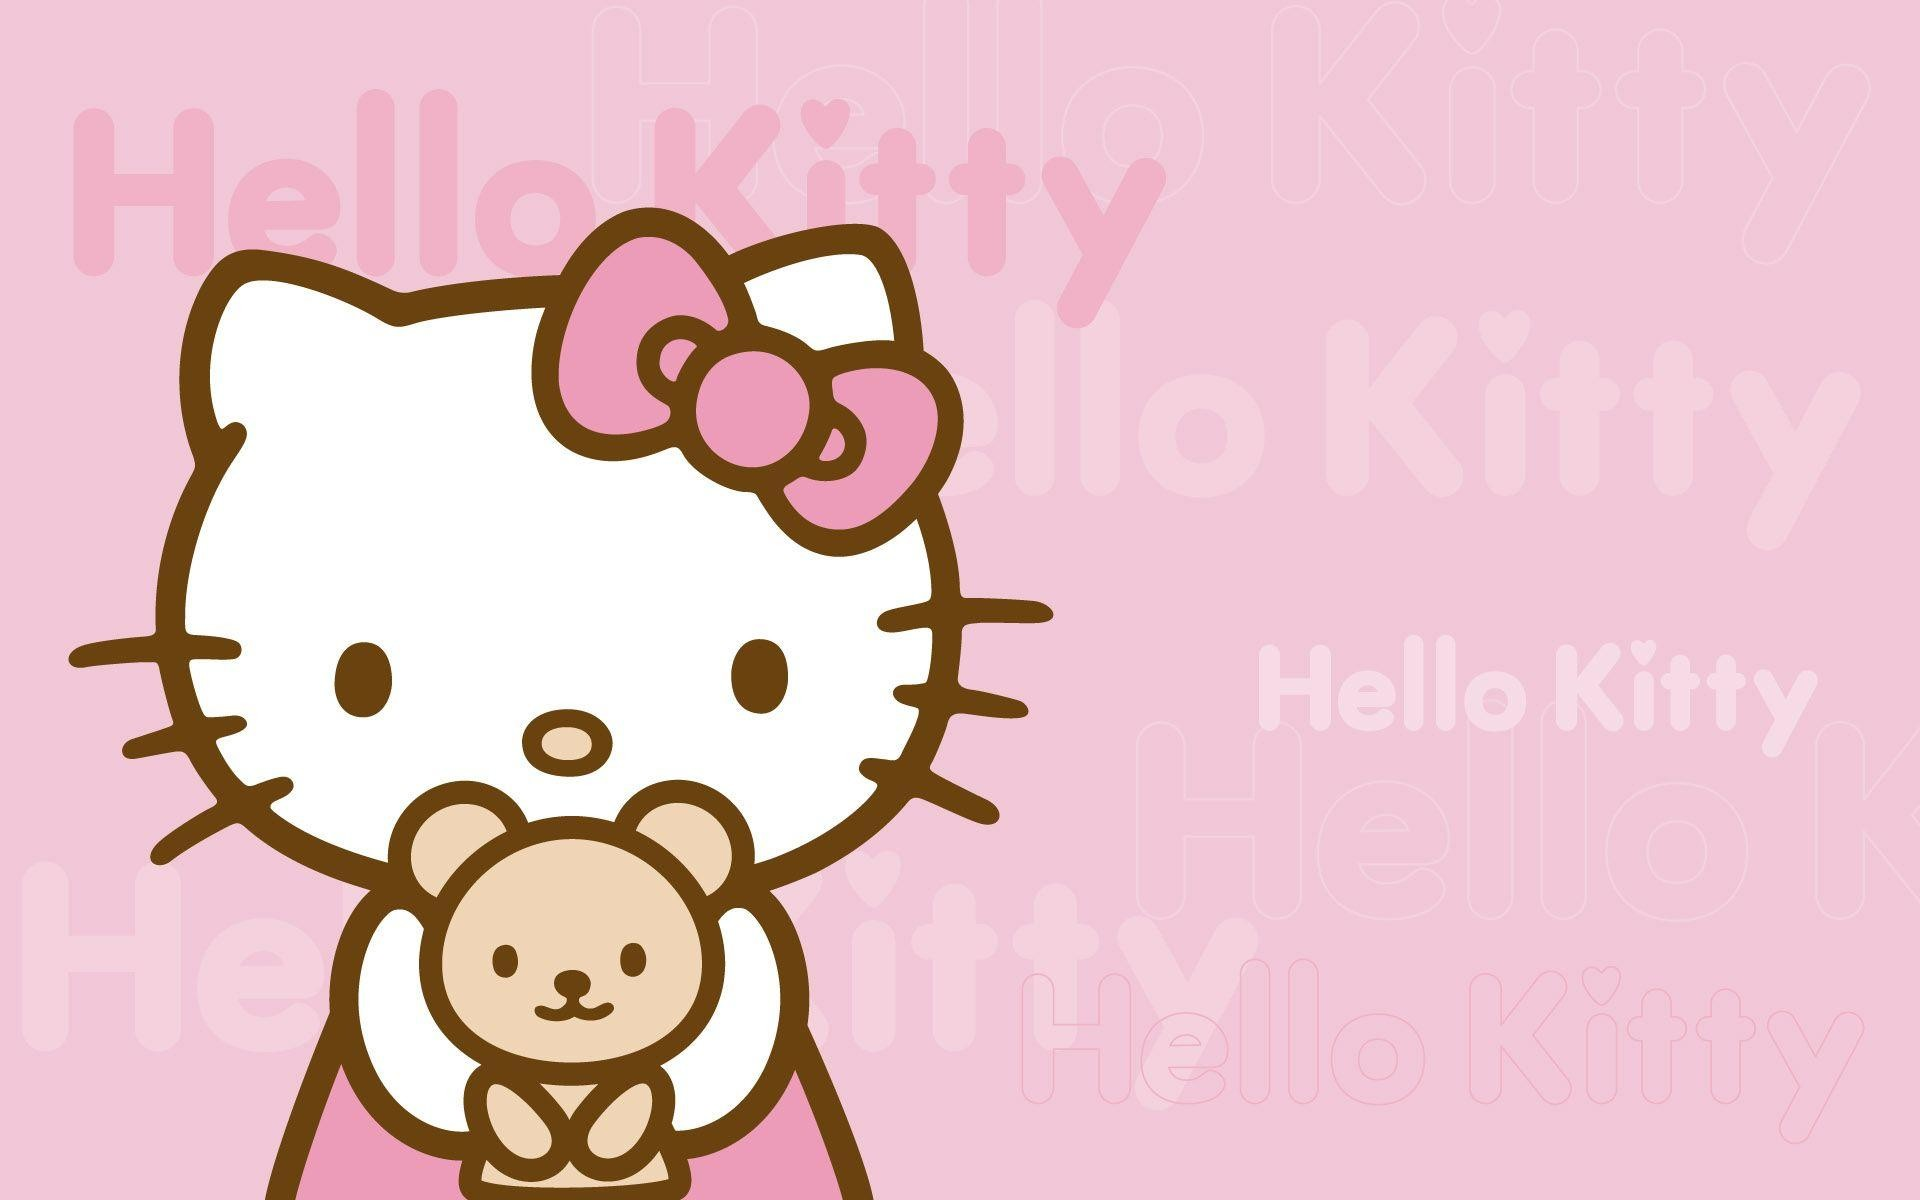 Best Wallpaper Hello Kitty Plain - 854573-vertical-hello-kitty-backgrounds-for-computers-1920x1200-cell-phone  Image_139068.jpg